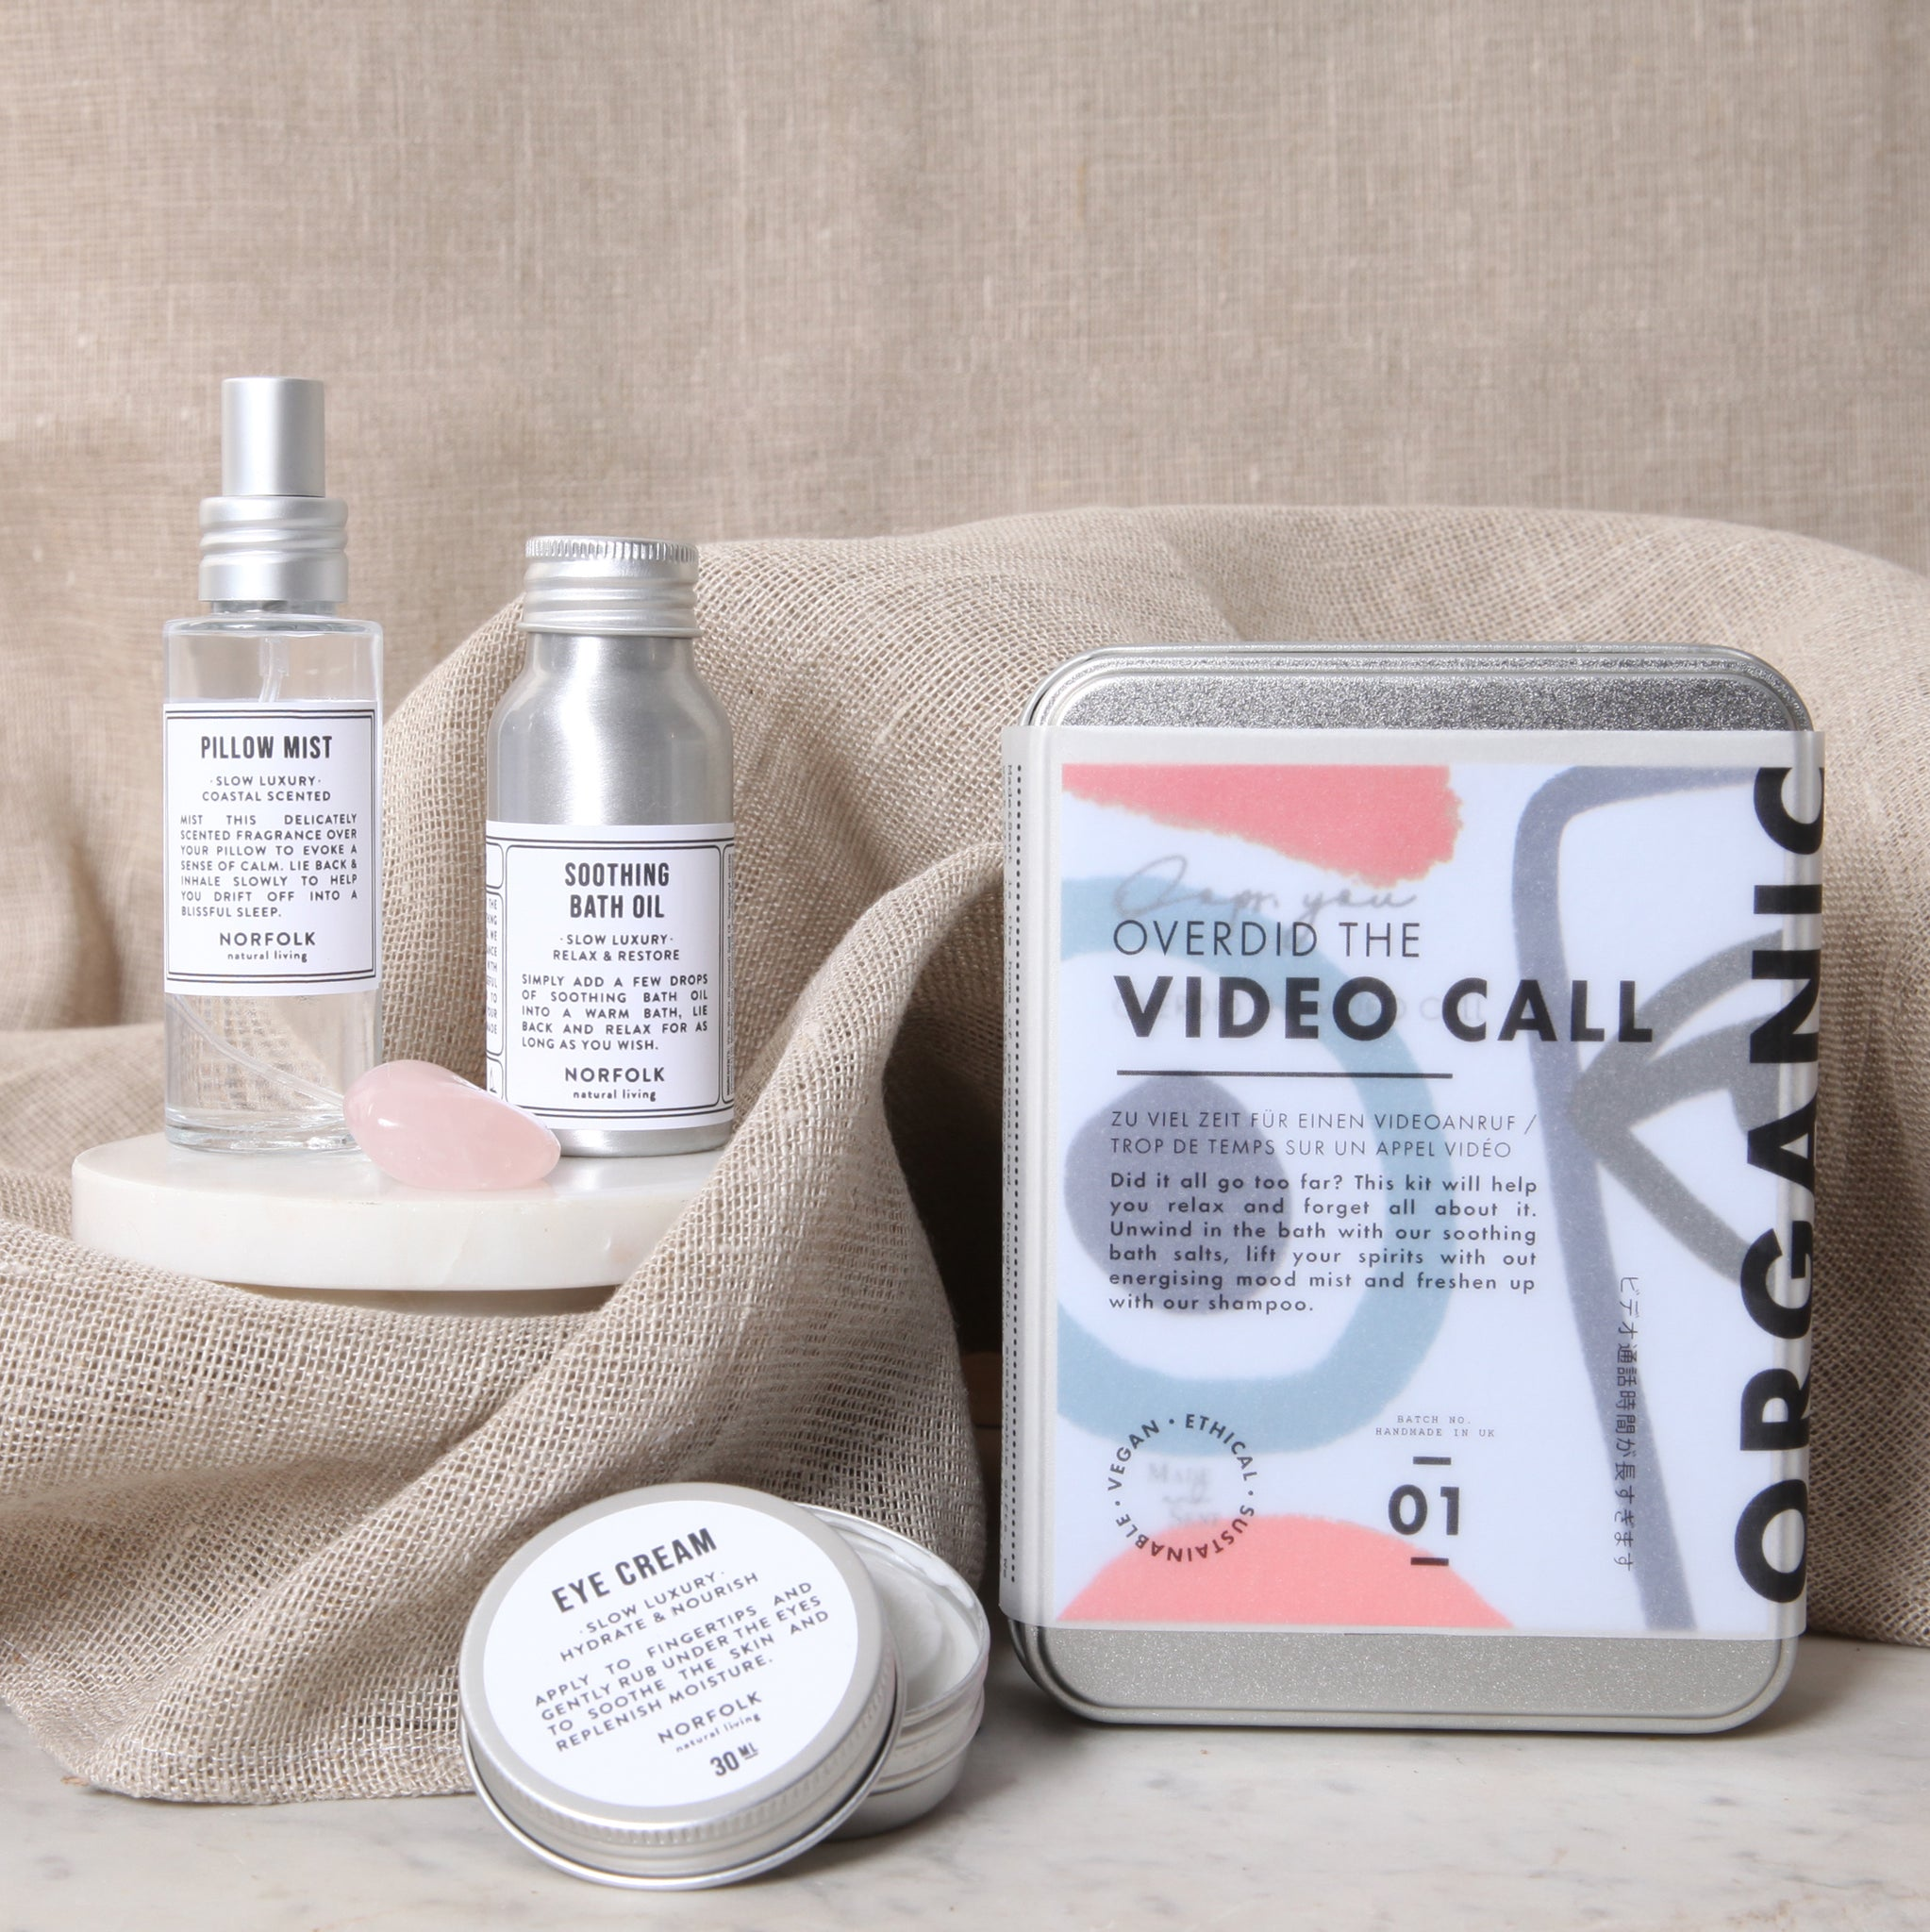 Recovery Gift Kit - Overdid the Video Call